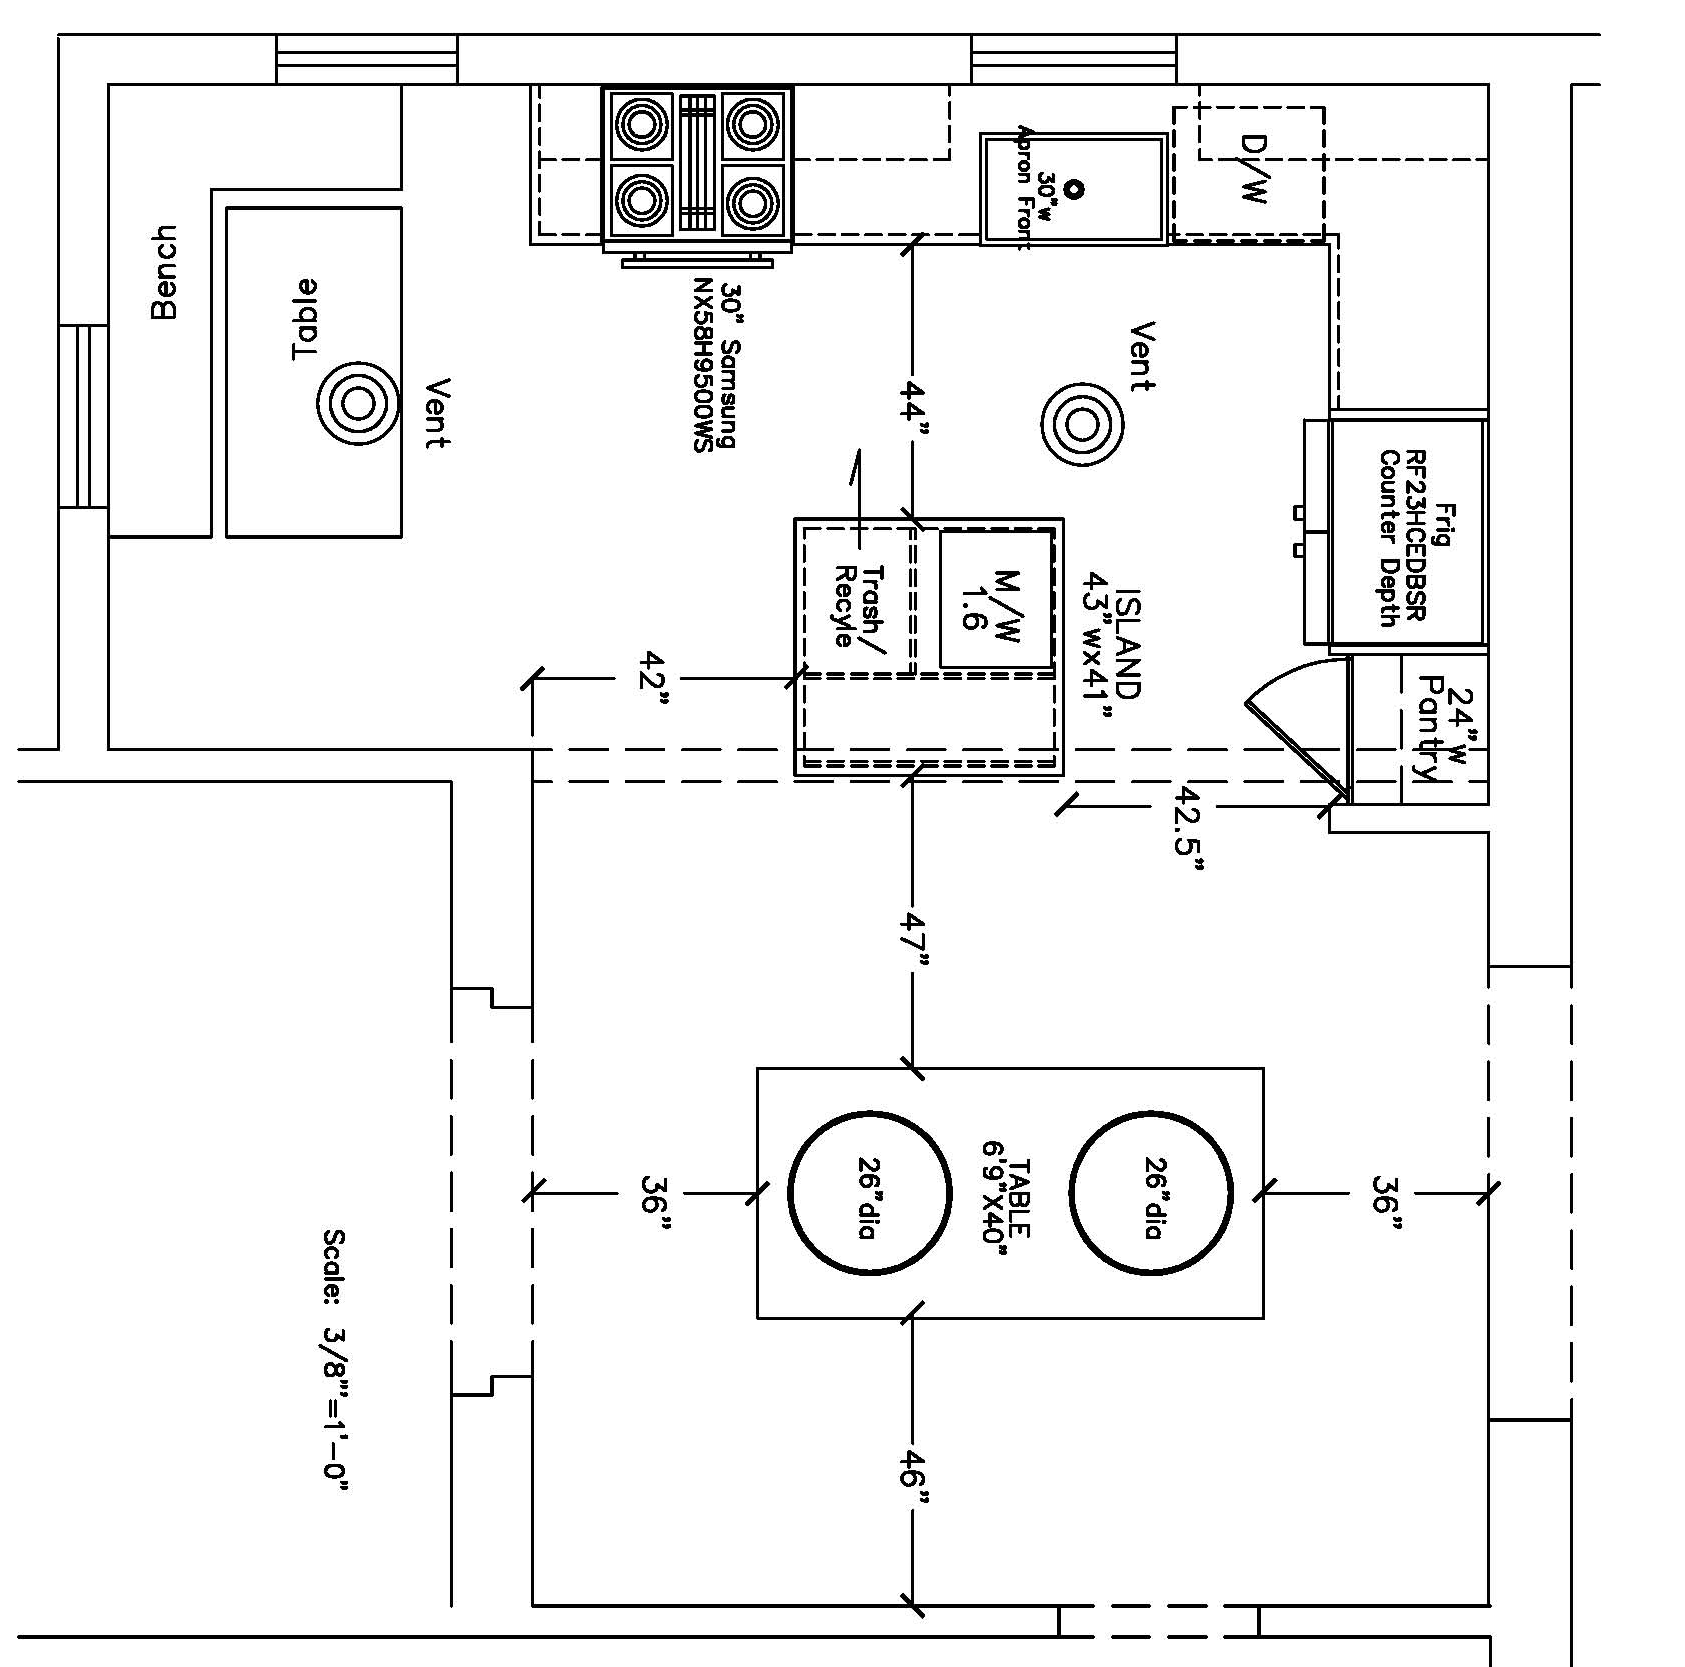 Living Dining CAD Drawing.jpg